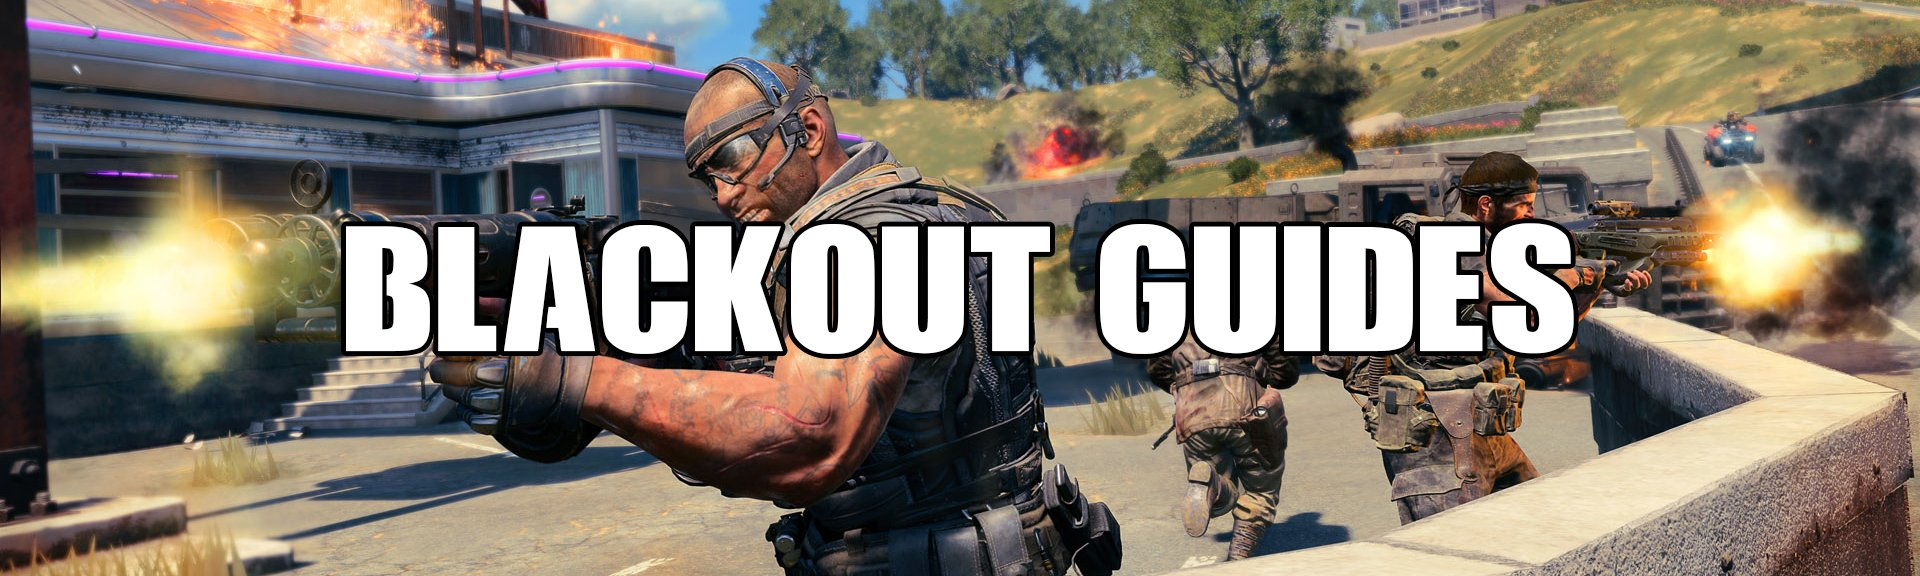 Call Of Duty Black Ops 4 Blackout Tips And Zombies Guide Way Switch Tutorial Guides